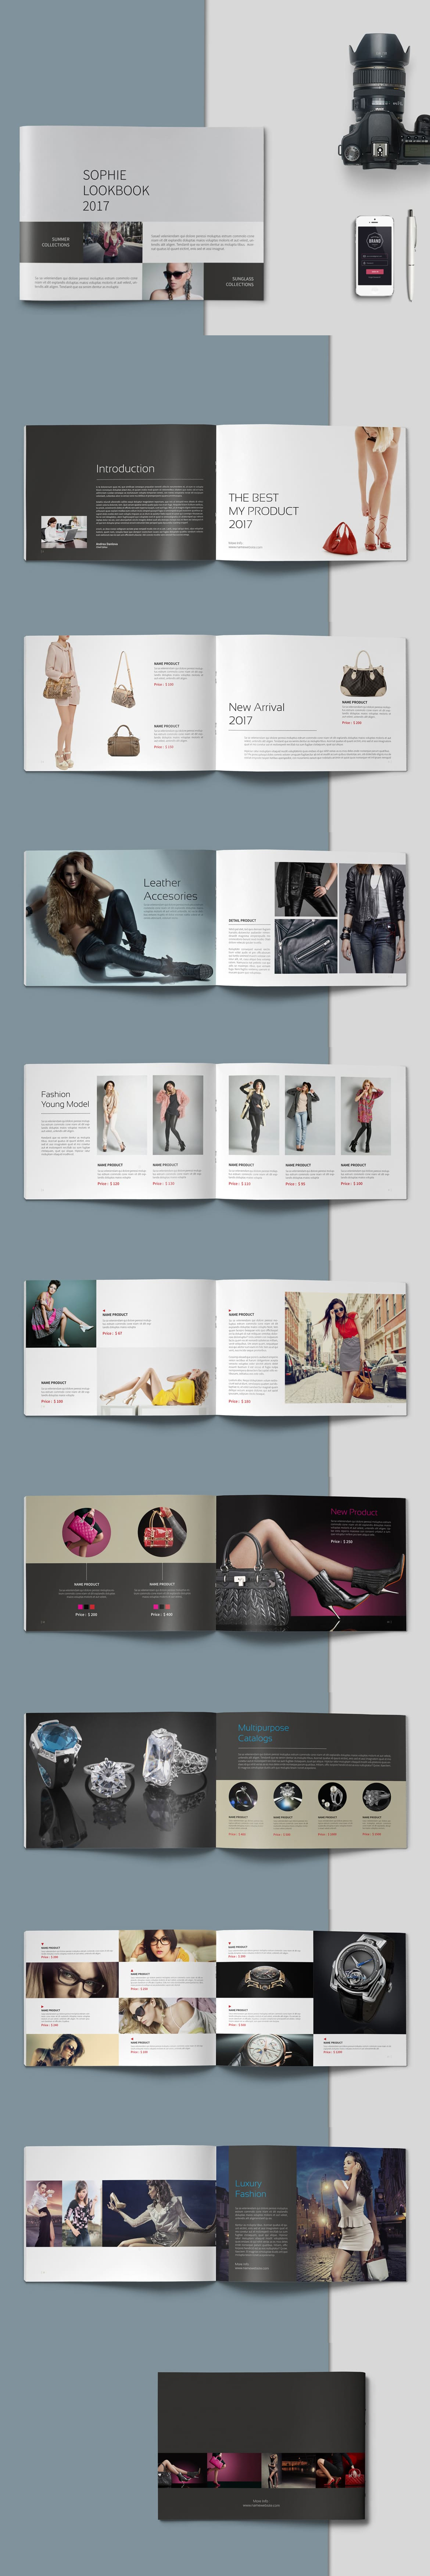 Fashion Lookbook Template InDesign INDD - 20 Pages | Lookbook ...